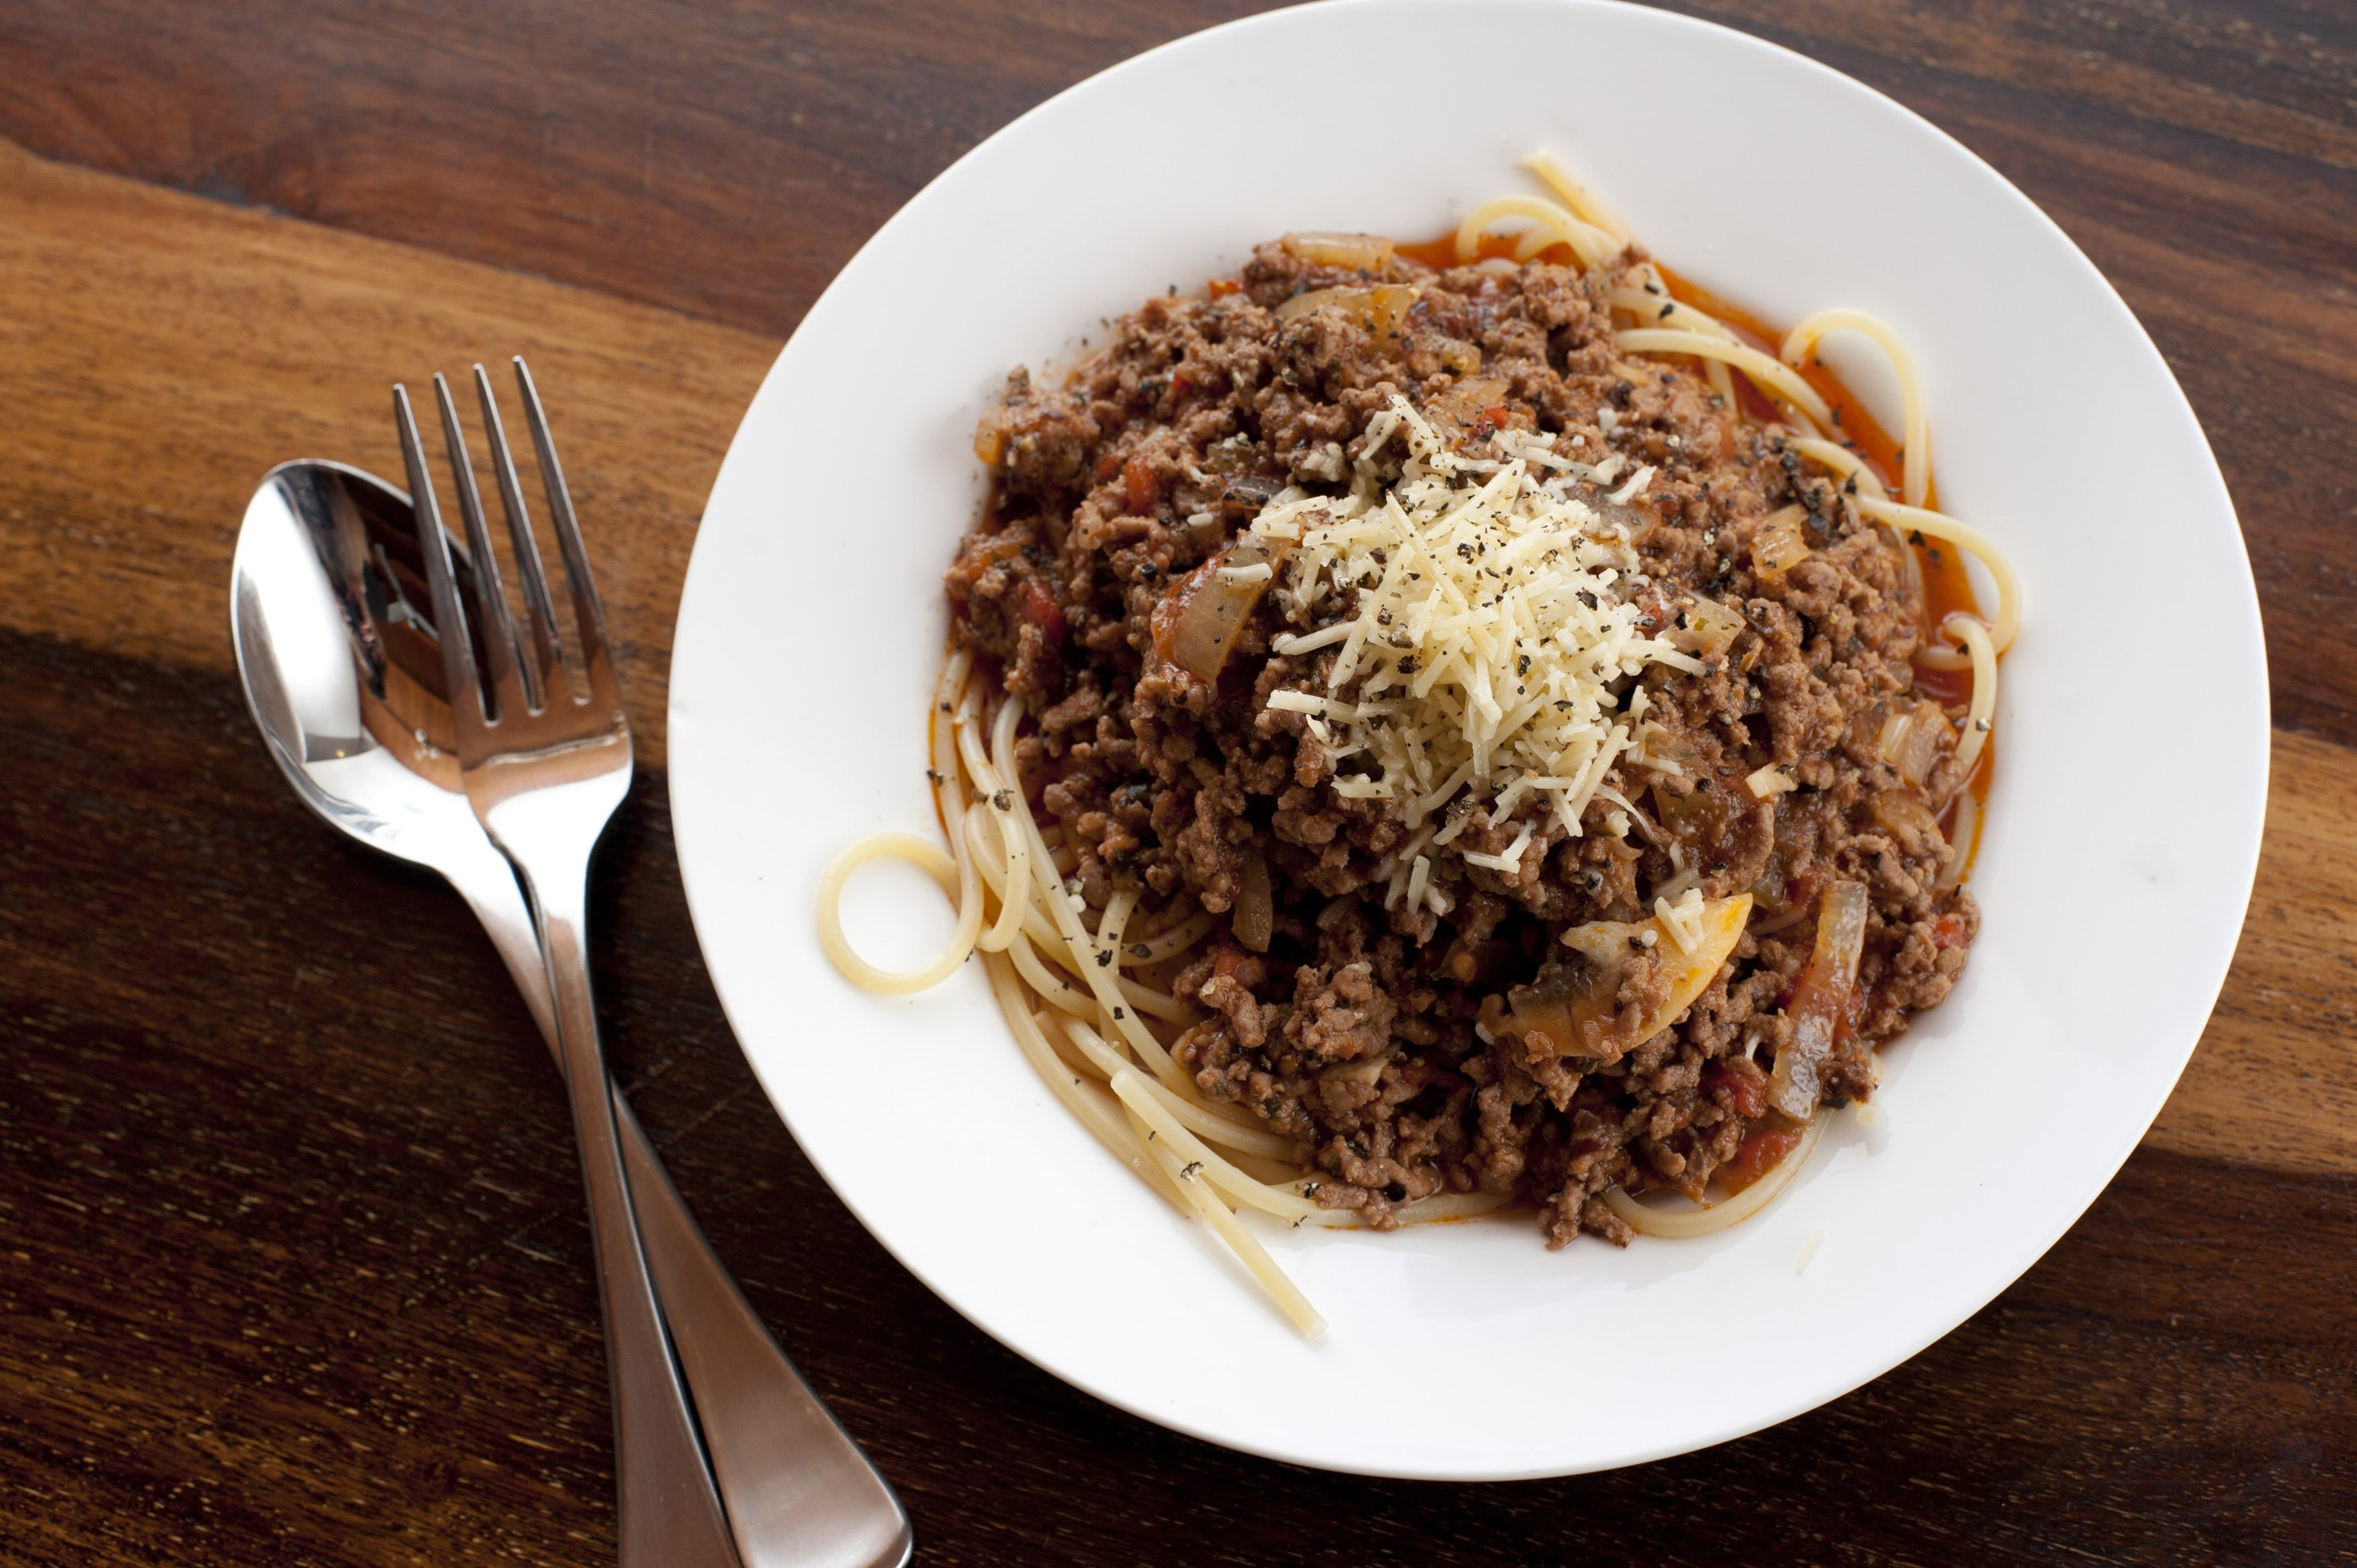 Overhead view of spaghetti bolognese